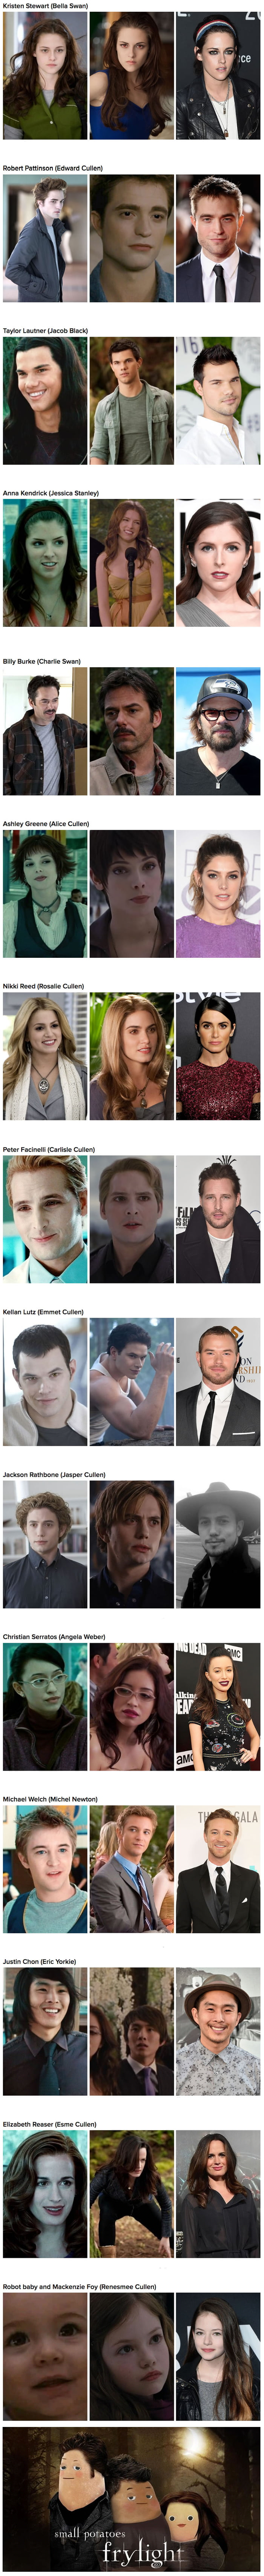 here s what the cast of twilight looks like five years later gag here s what the cast of twilight looks like five years later